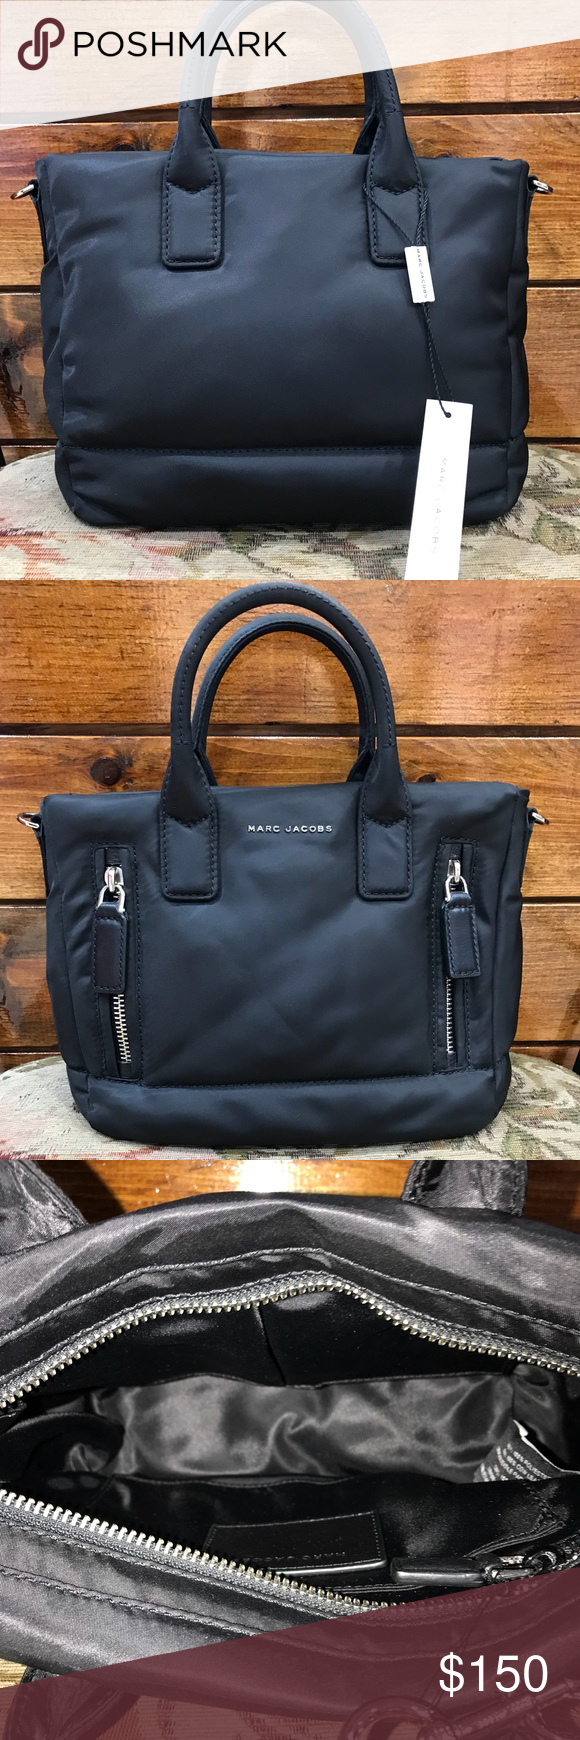 7e61362667c3 Marc Jacobs 100% Polyester Zipper Bag Product dimensions  9.5 x 4.5 x 8.5  inches. 100% polyester Marc Jacobs Bags Shoulder Bags